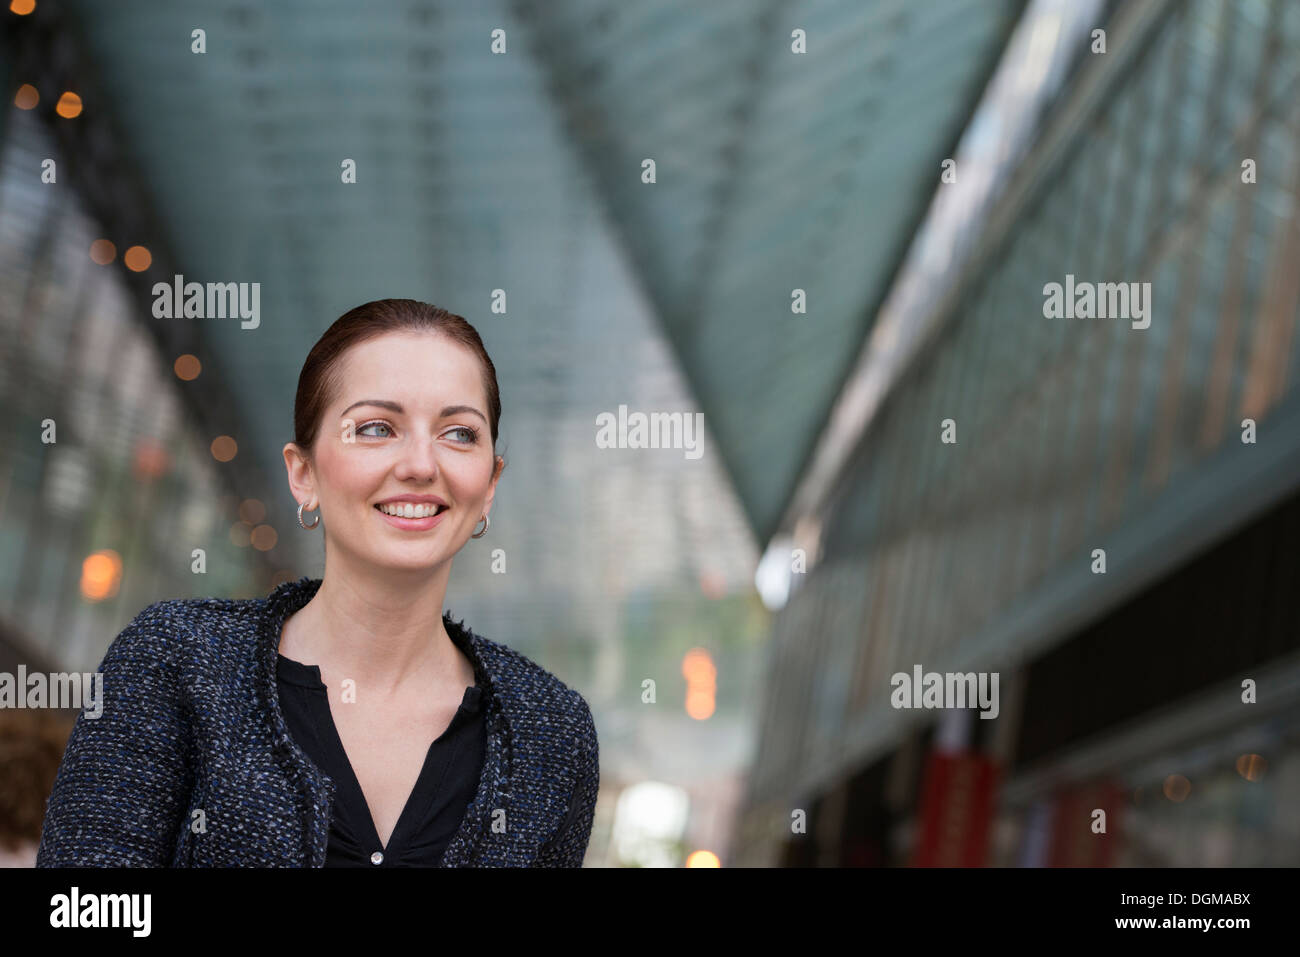 Business people outdoors. A woman in a grey jacket with her hair up, smiling. - Stock Image